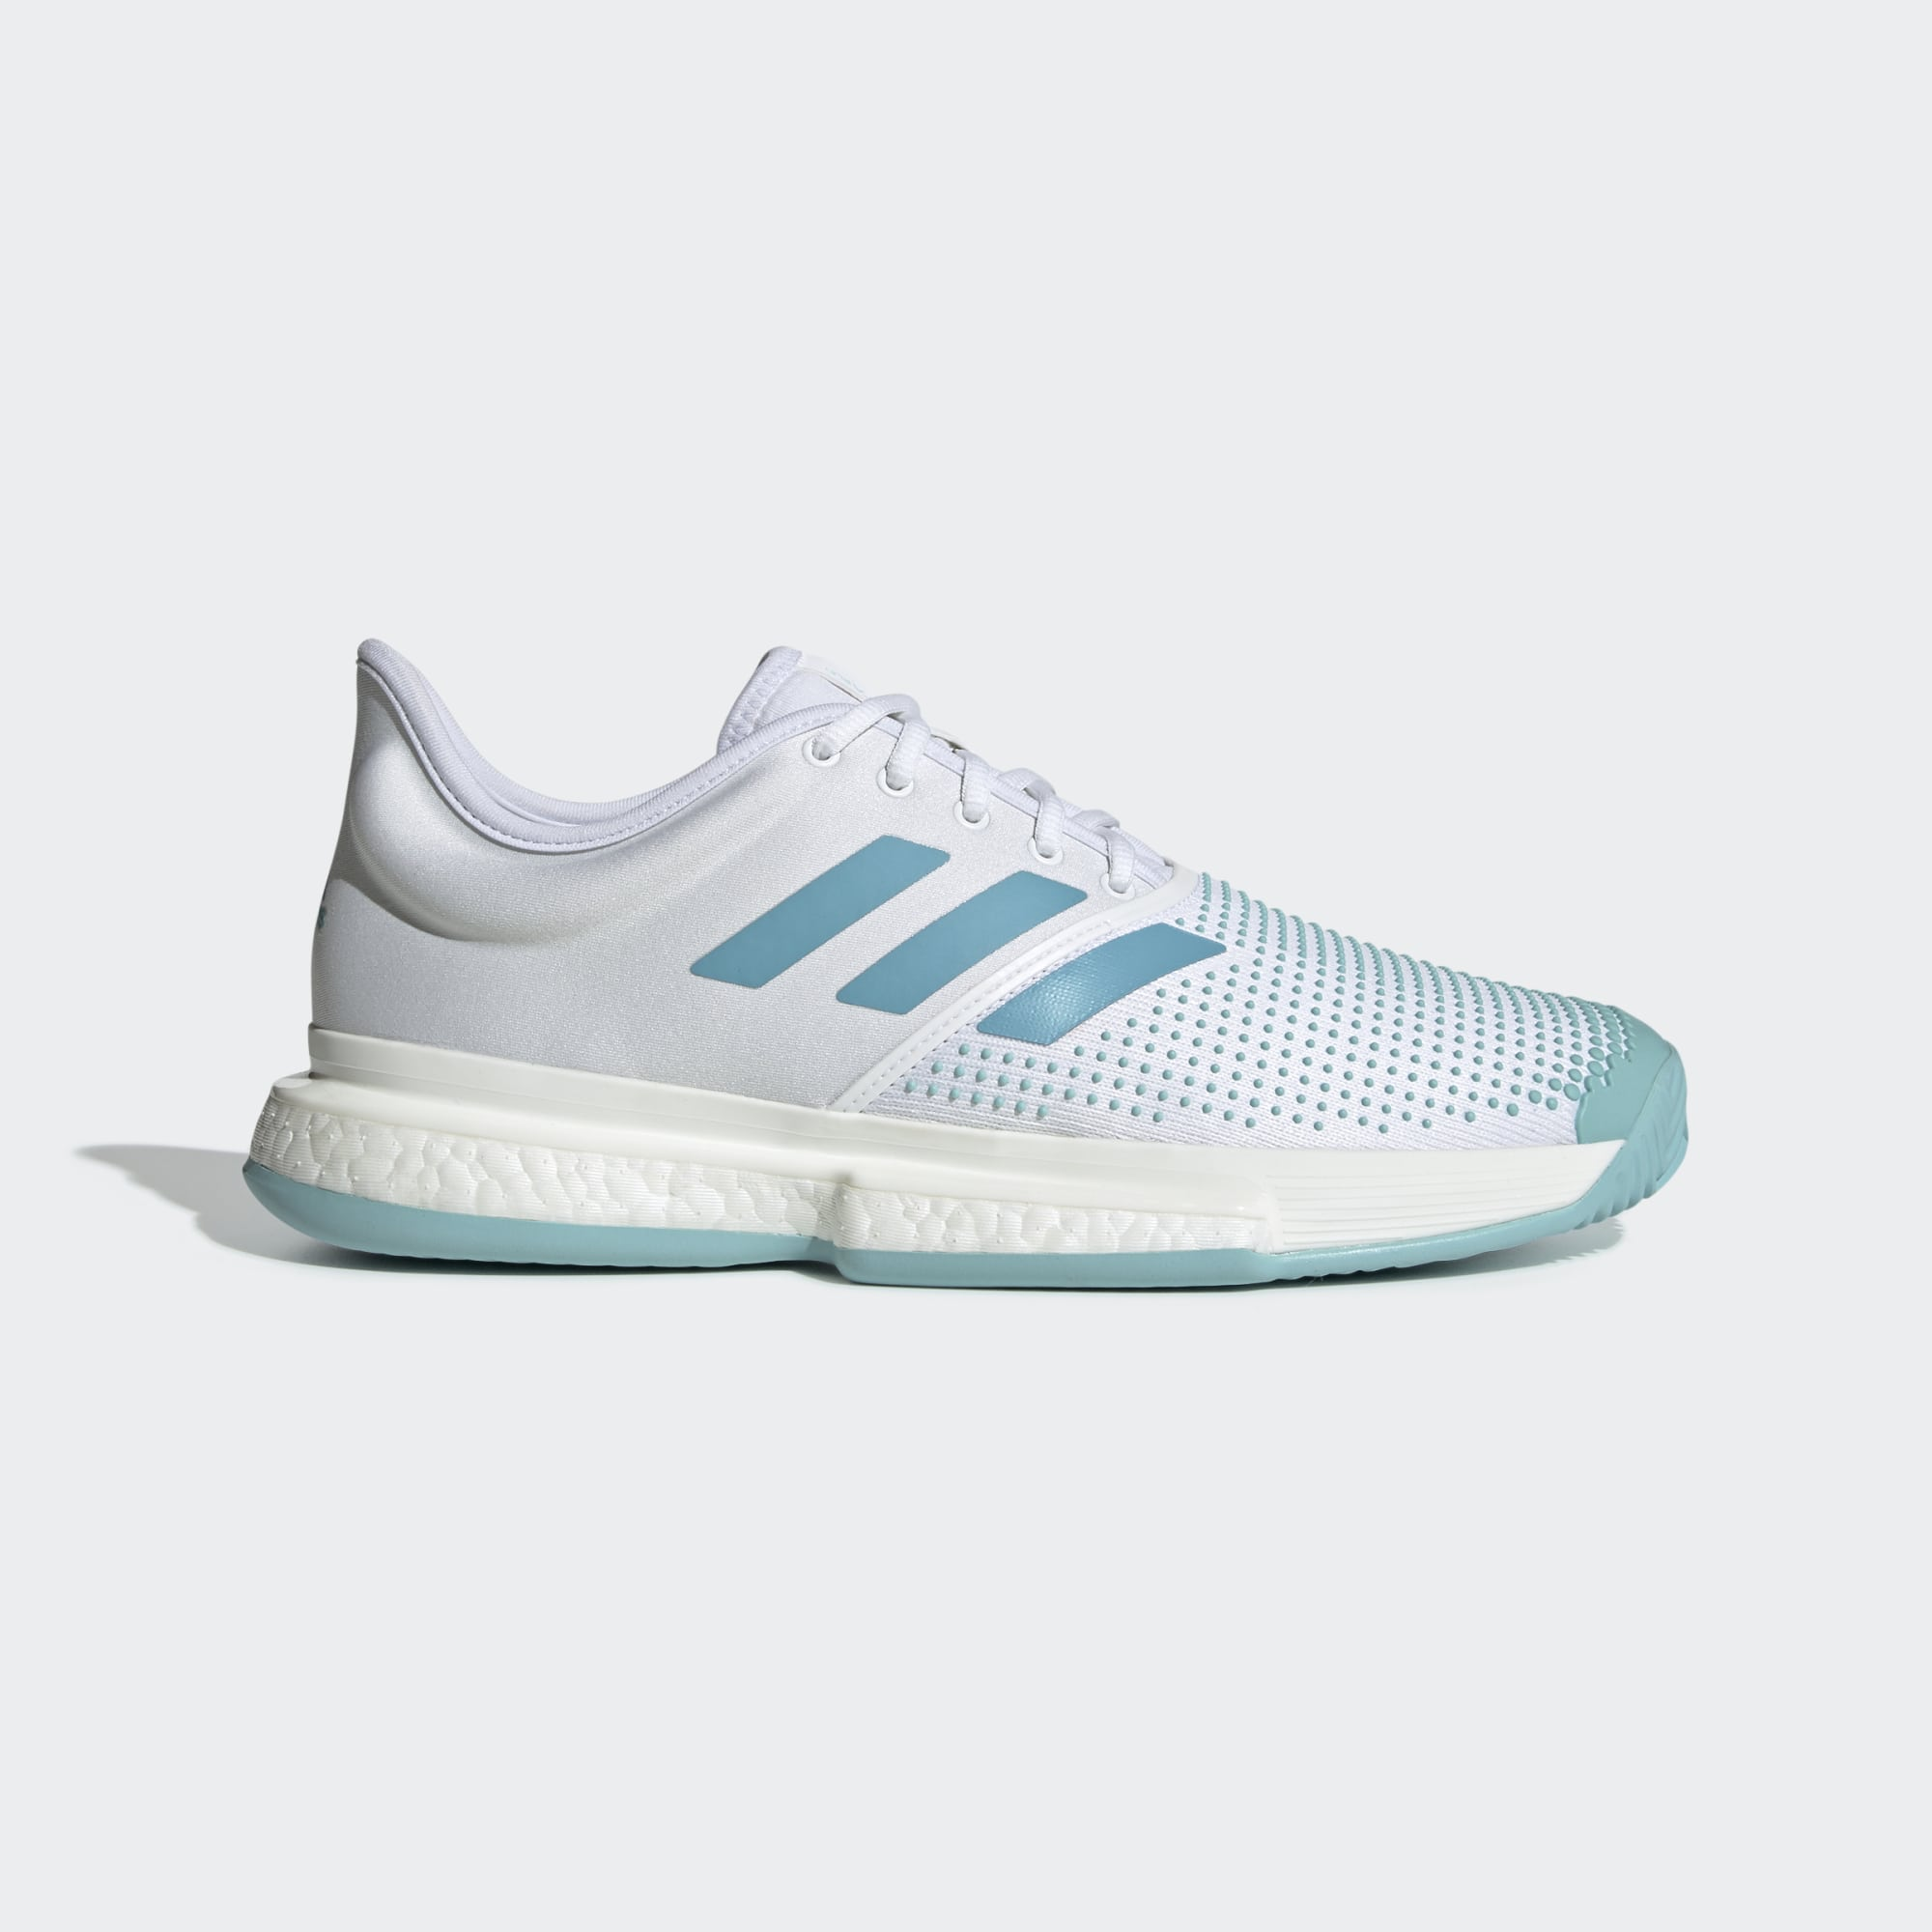 SoleCourt_Boost_Parley_Shoes_White_G26295_01_standard.jpg